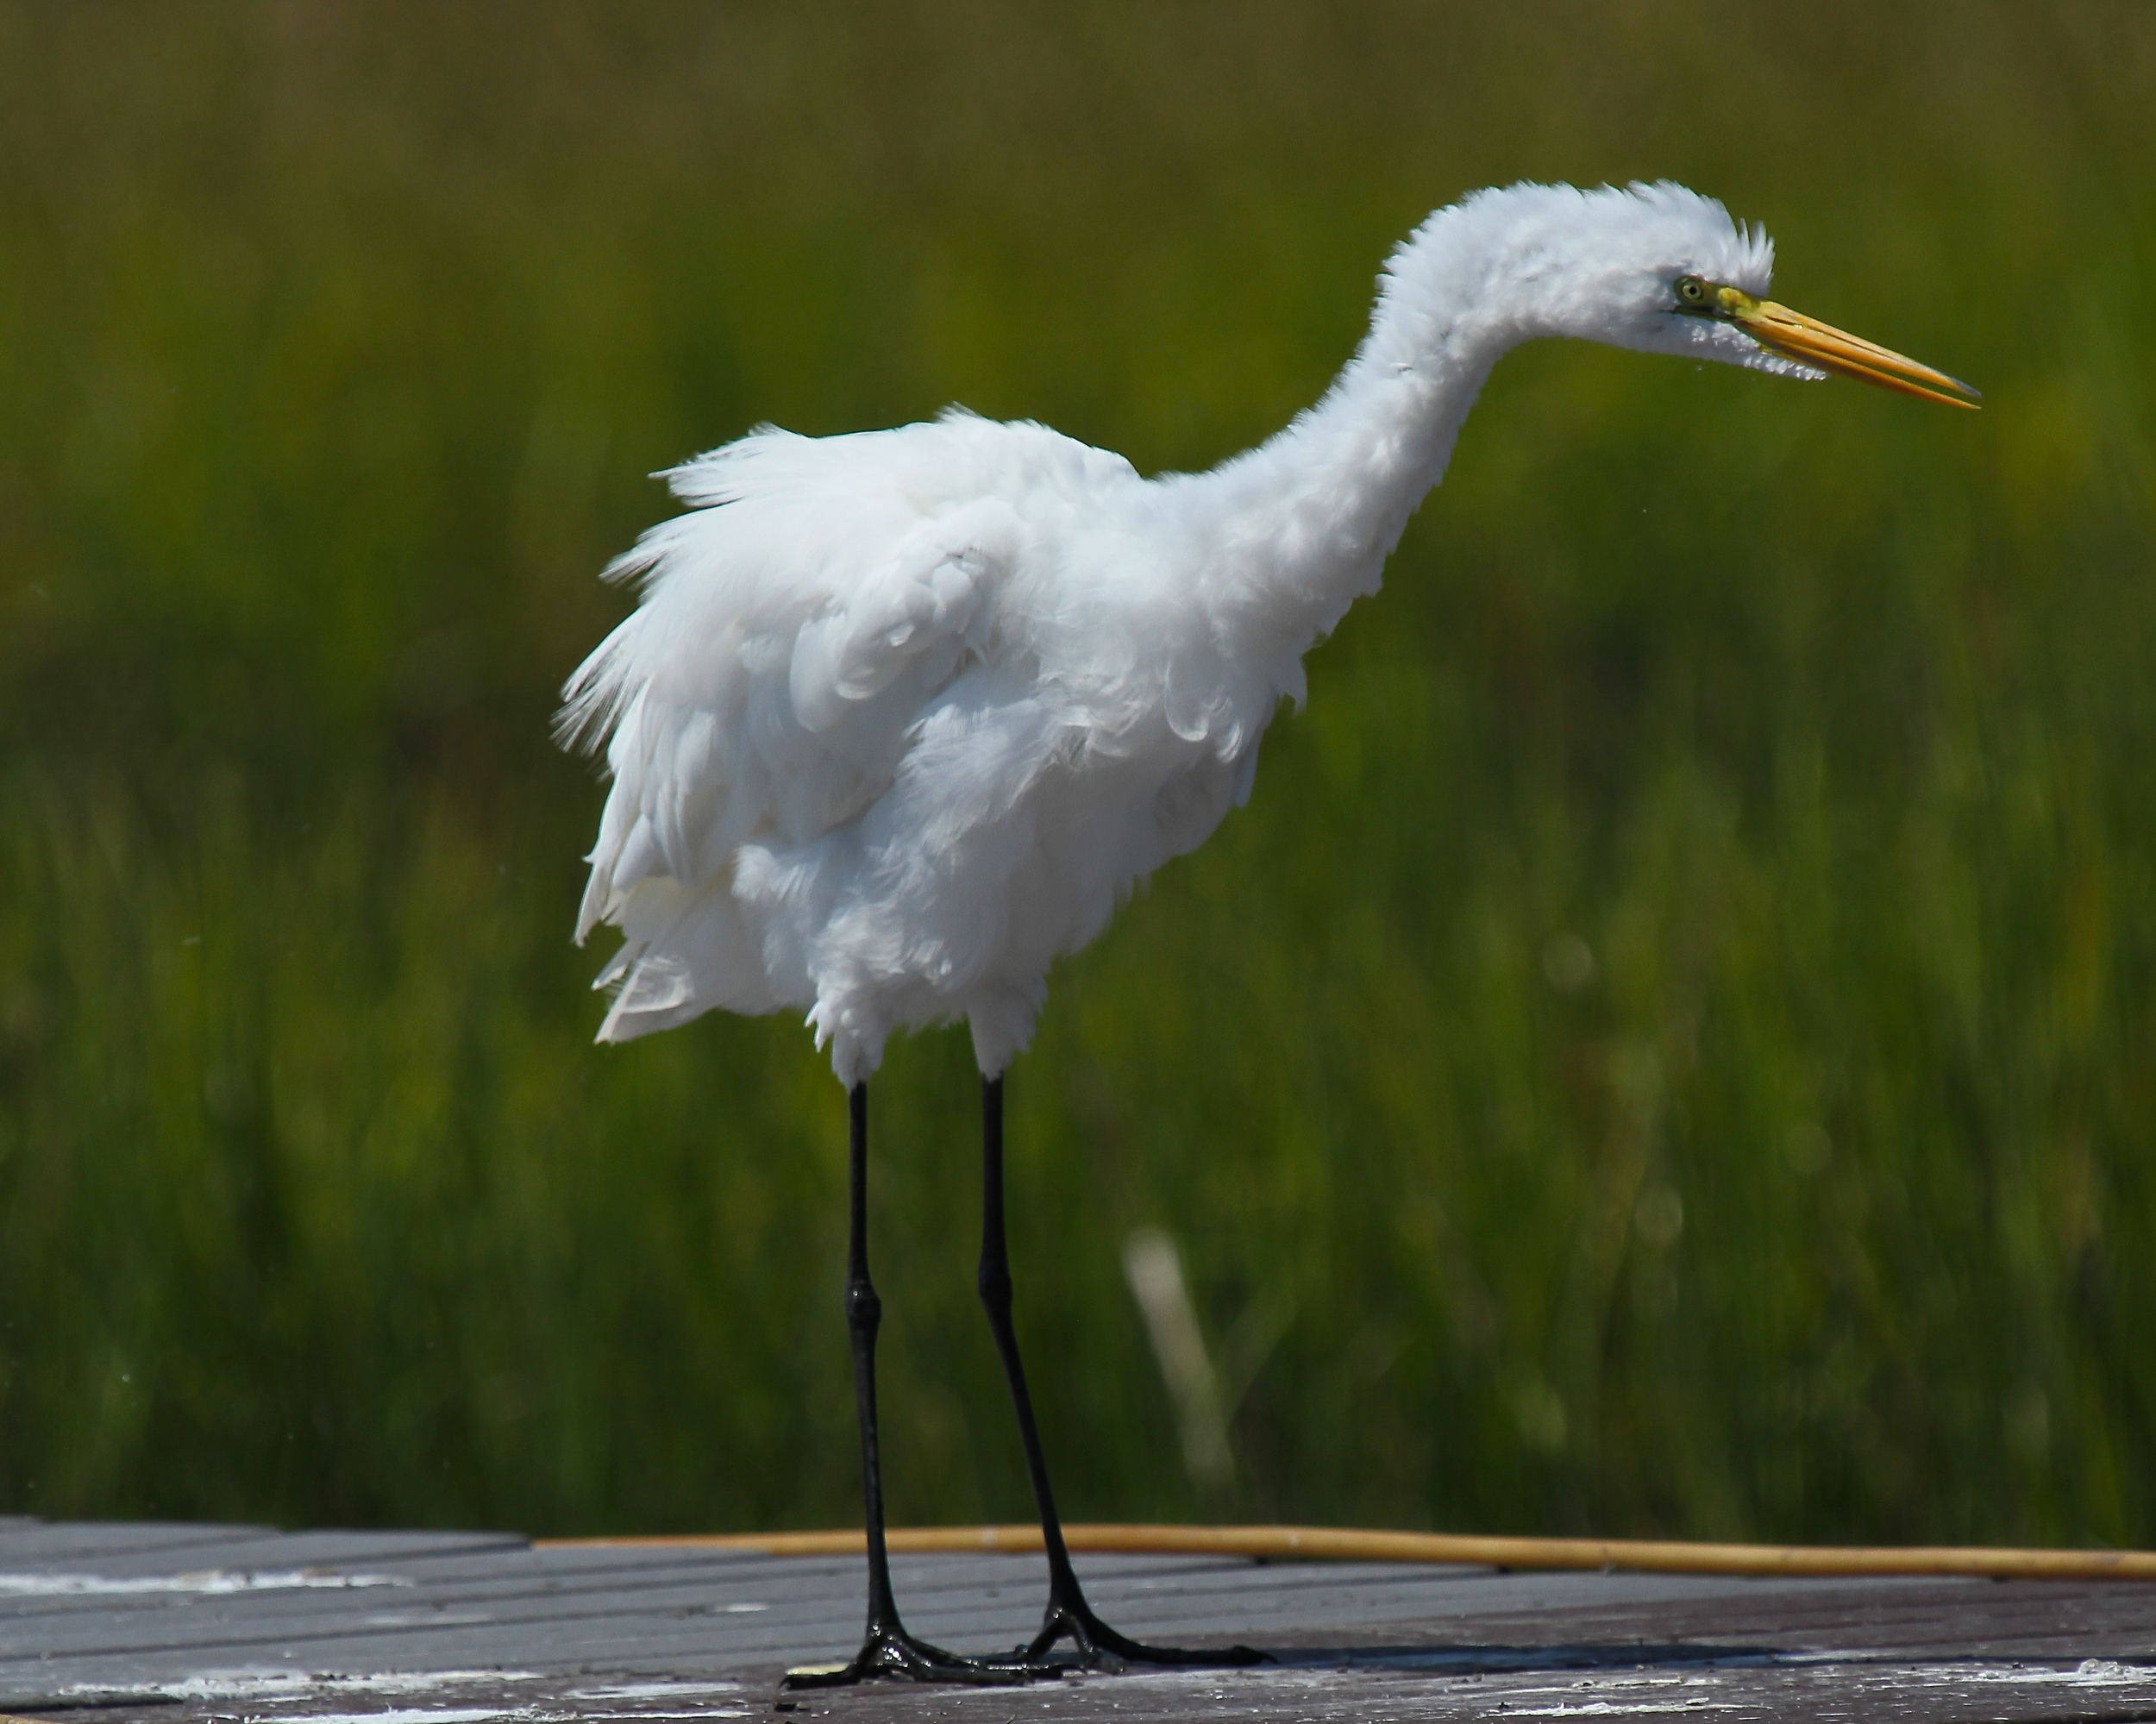 The Great Egret is really upset over something it saw too!